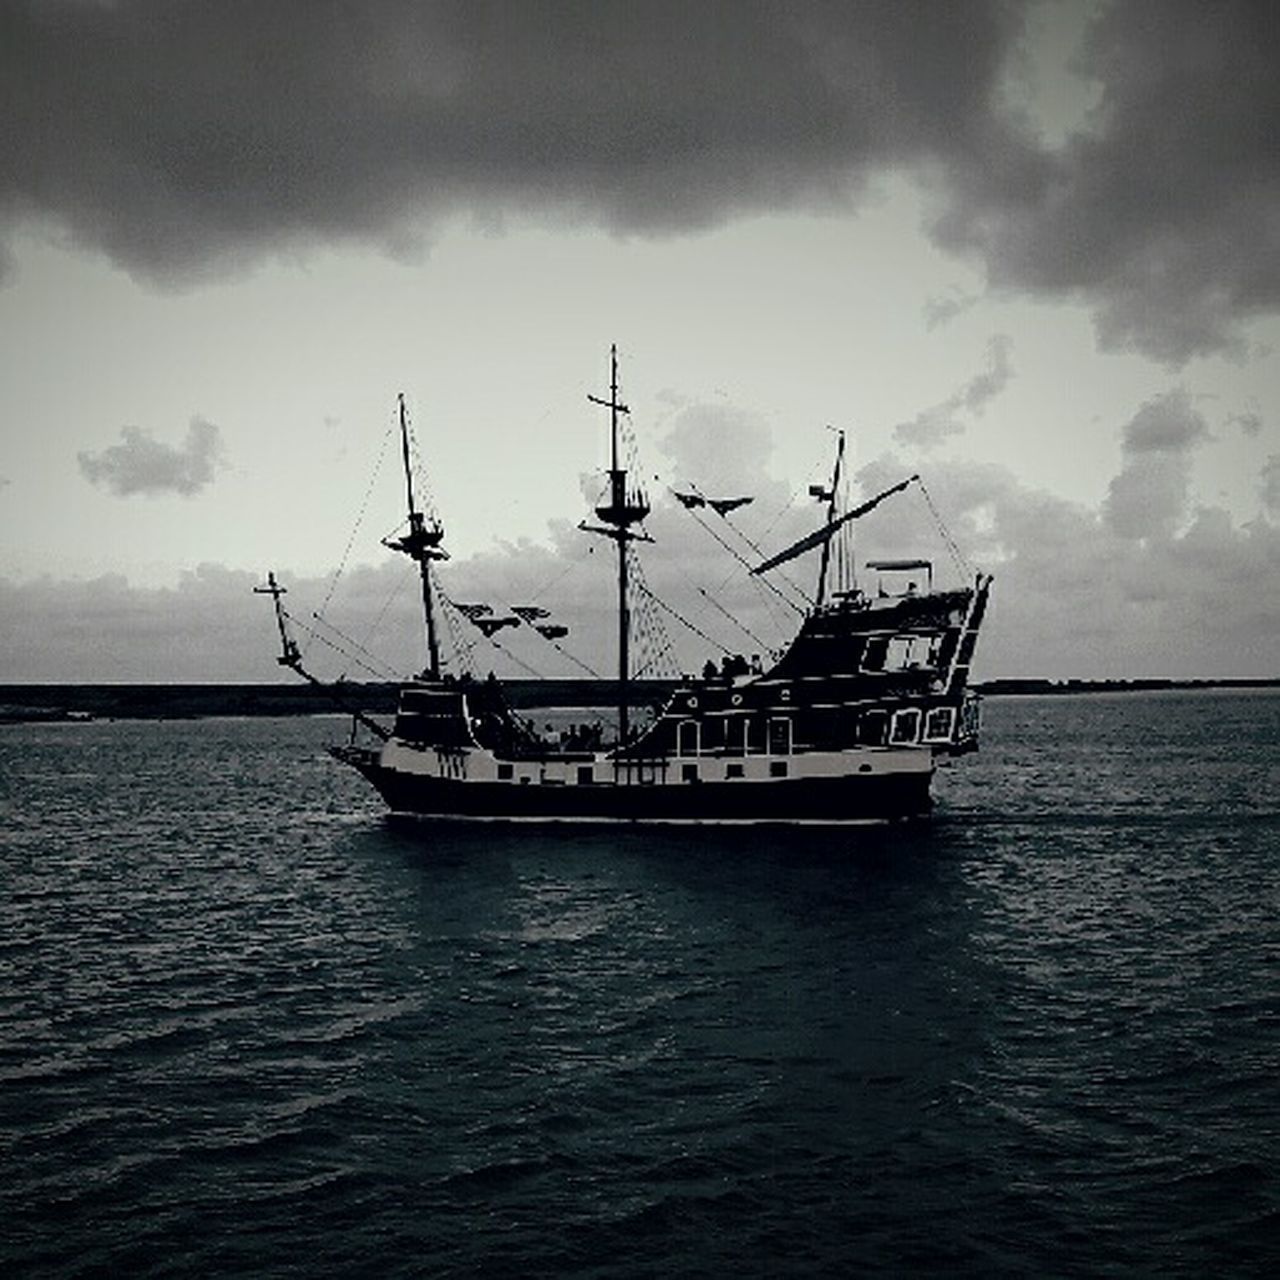 Cake by the ocean Ocean Ship Navy Ocean Corpus Christi, Tx The Isabella Vintage Photo Selective Focus Wood Ships